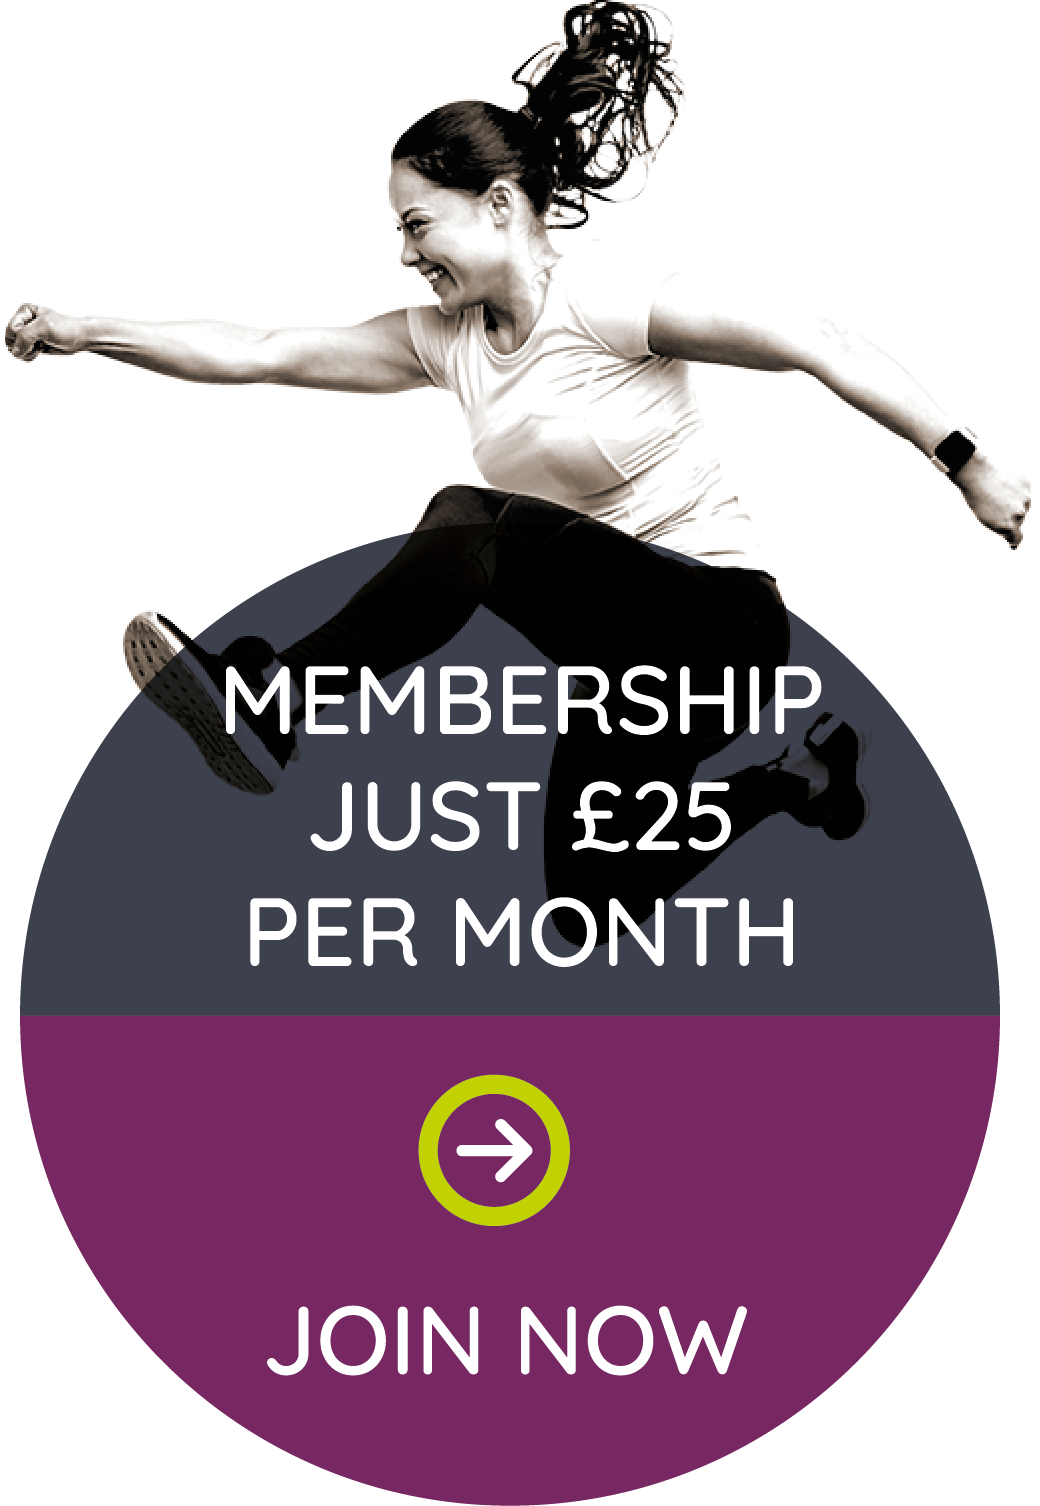 Membership just £25 per month. Join now.